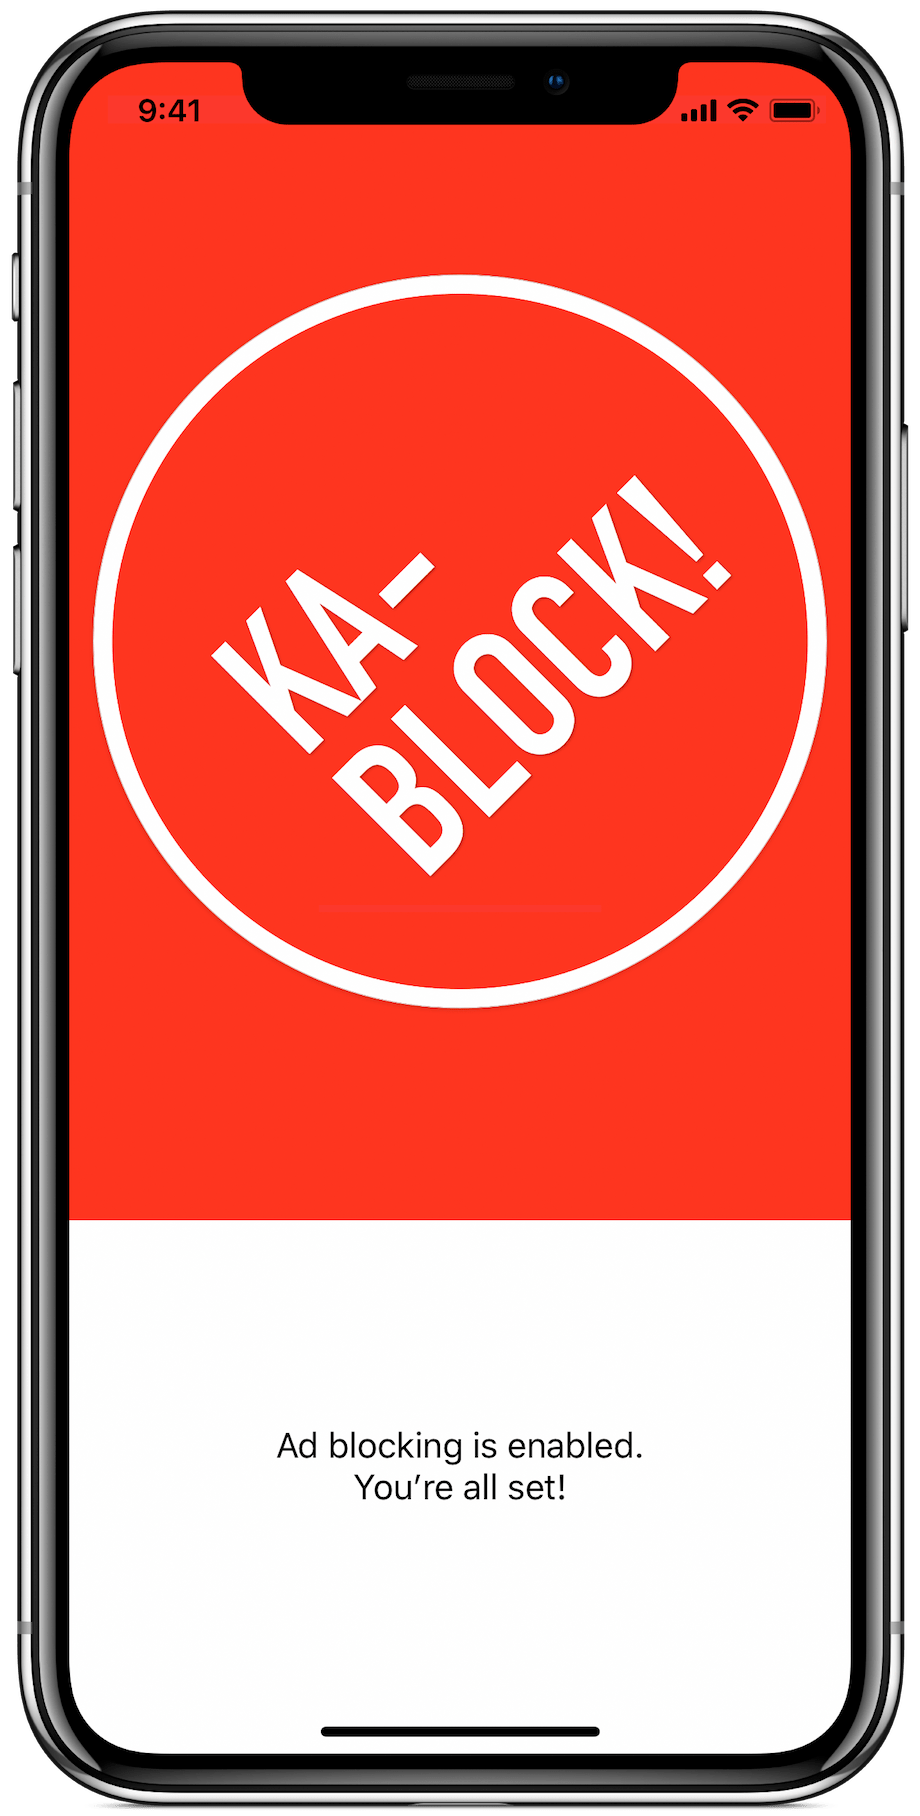 Ka-Block! iPhone app